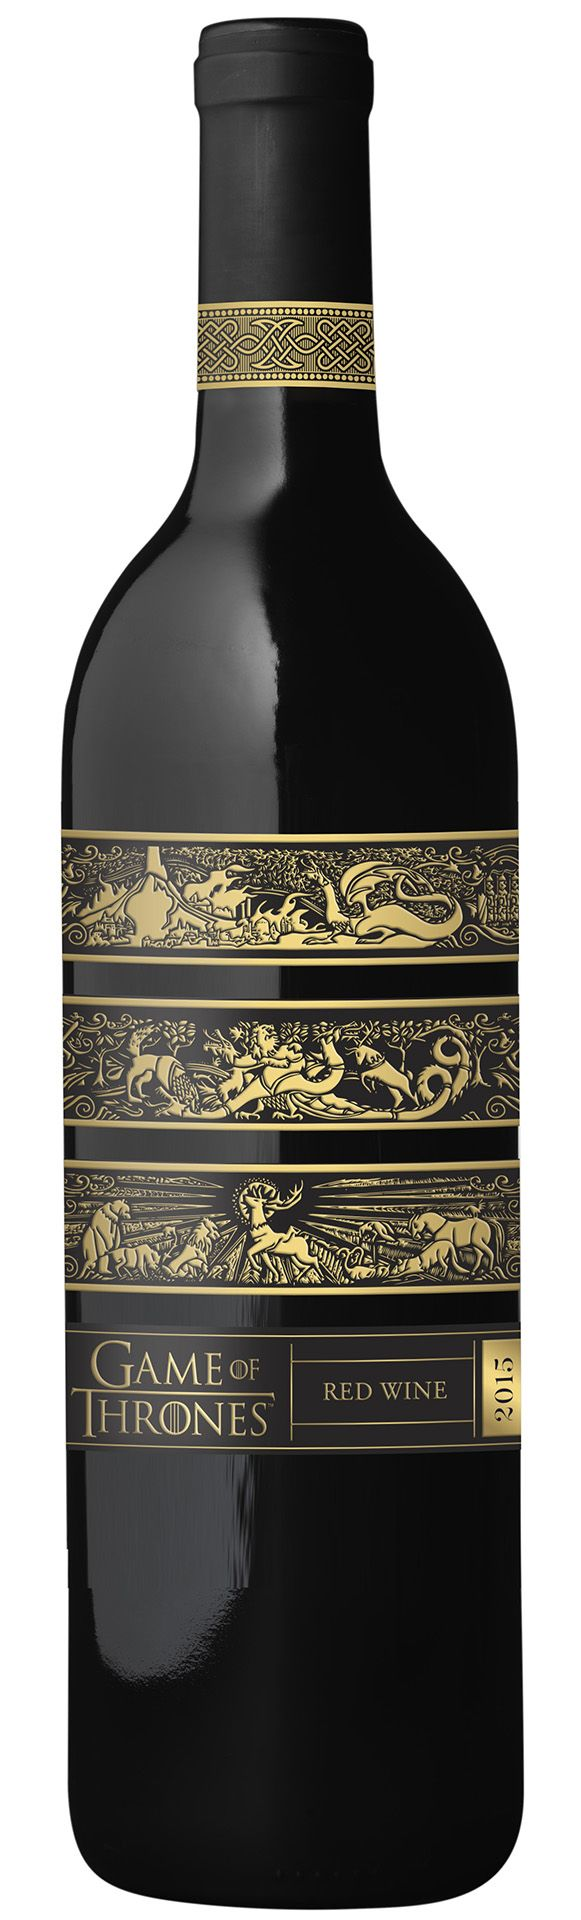 Officially Licensed Game of Thrones Red Wine